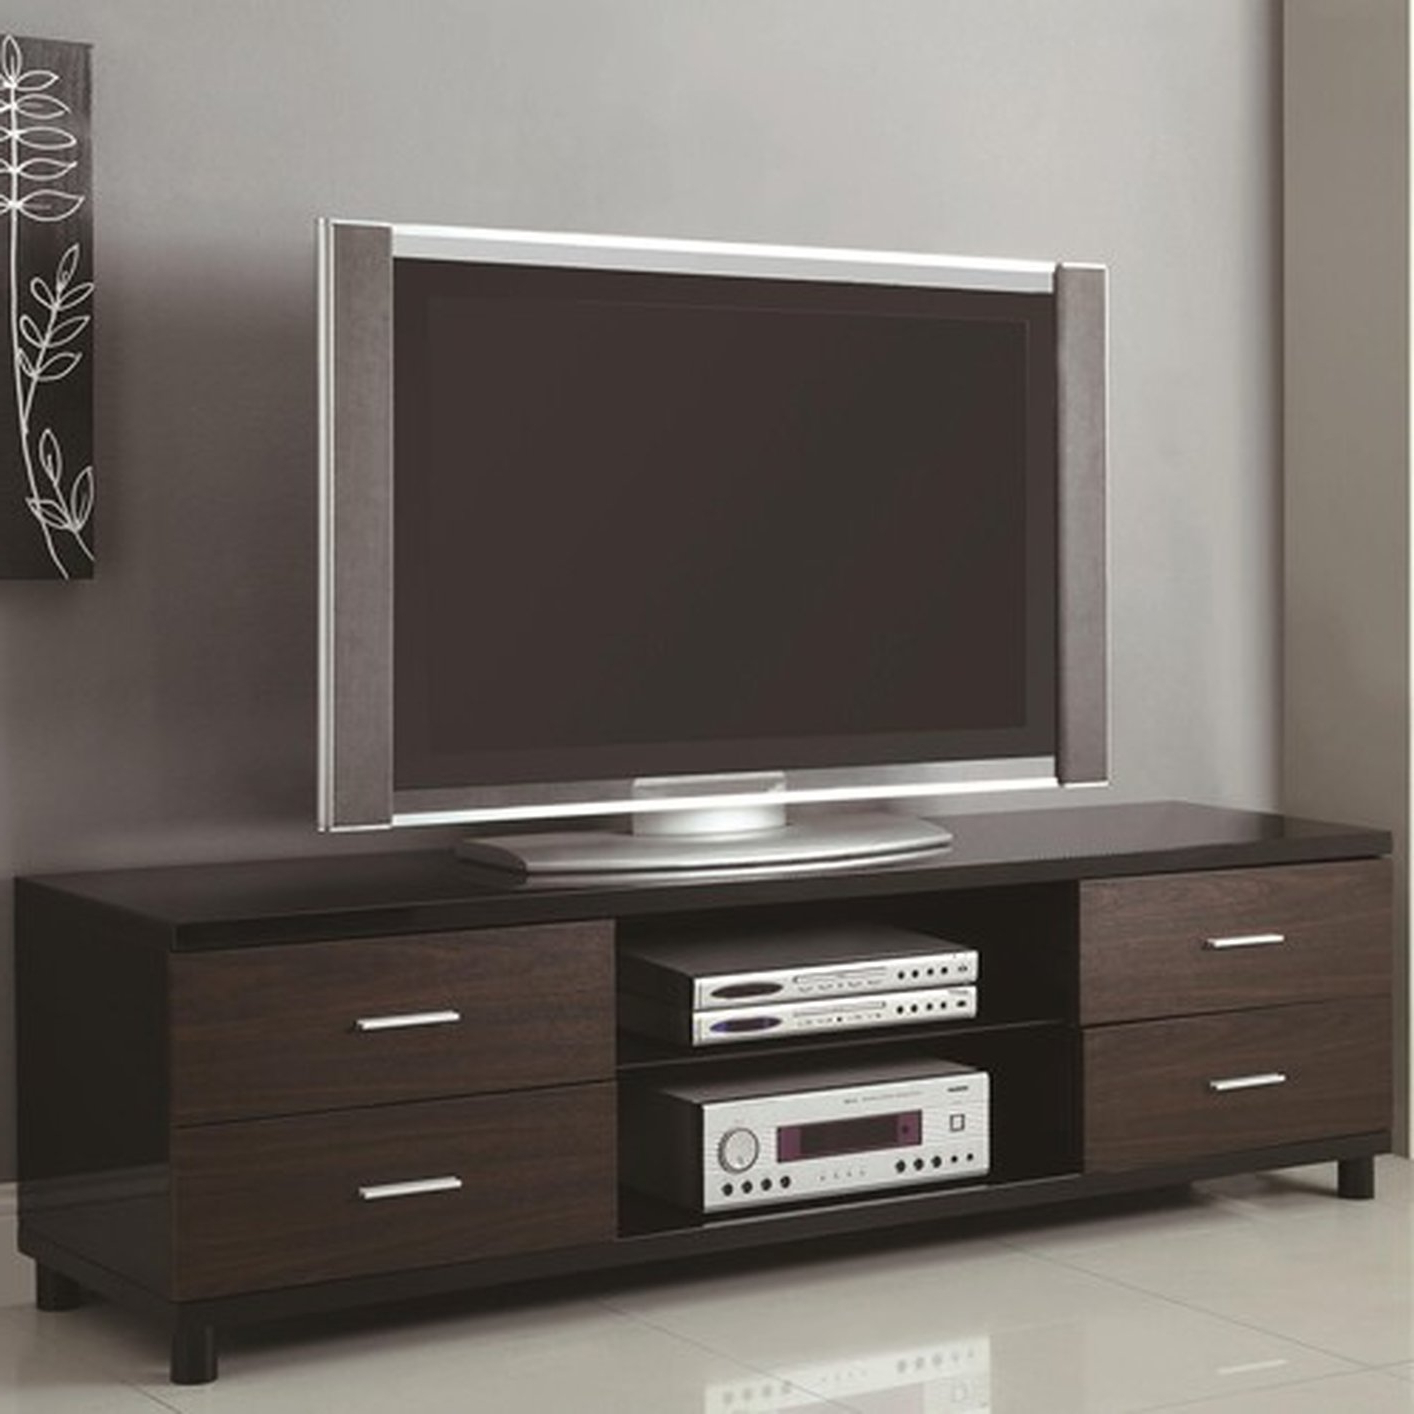 Black Wood Tv Cabinet (View 12 of 20)